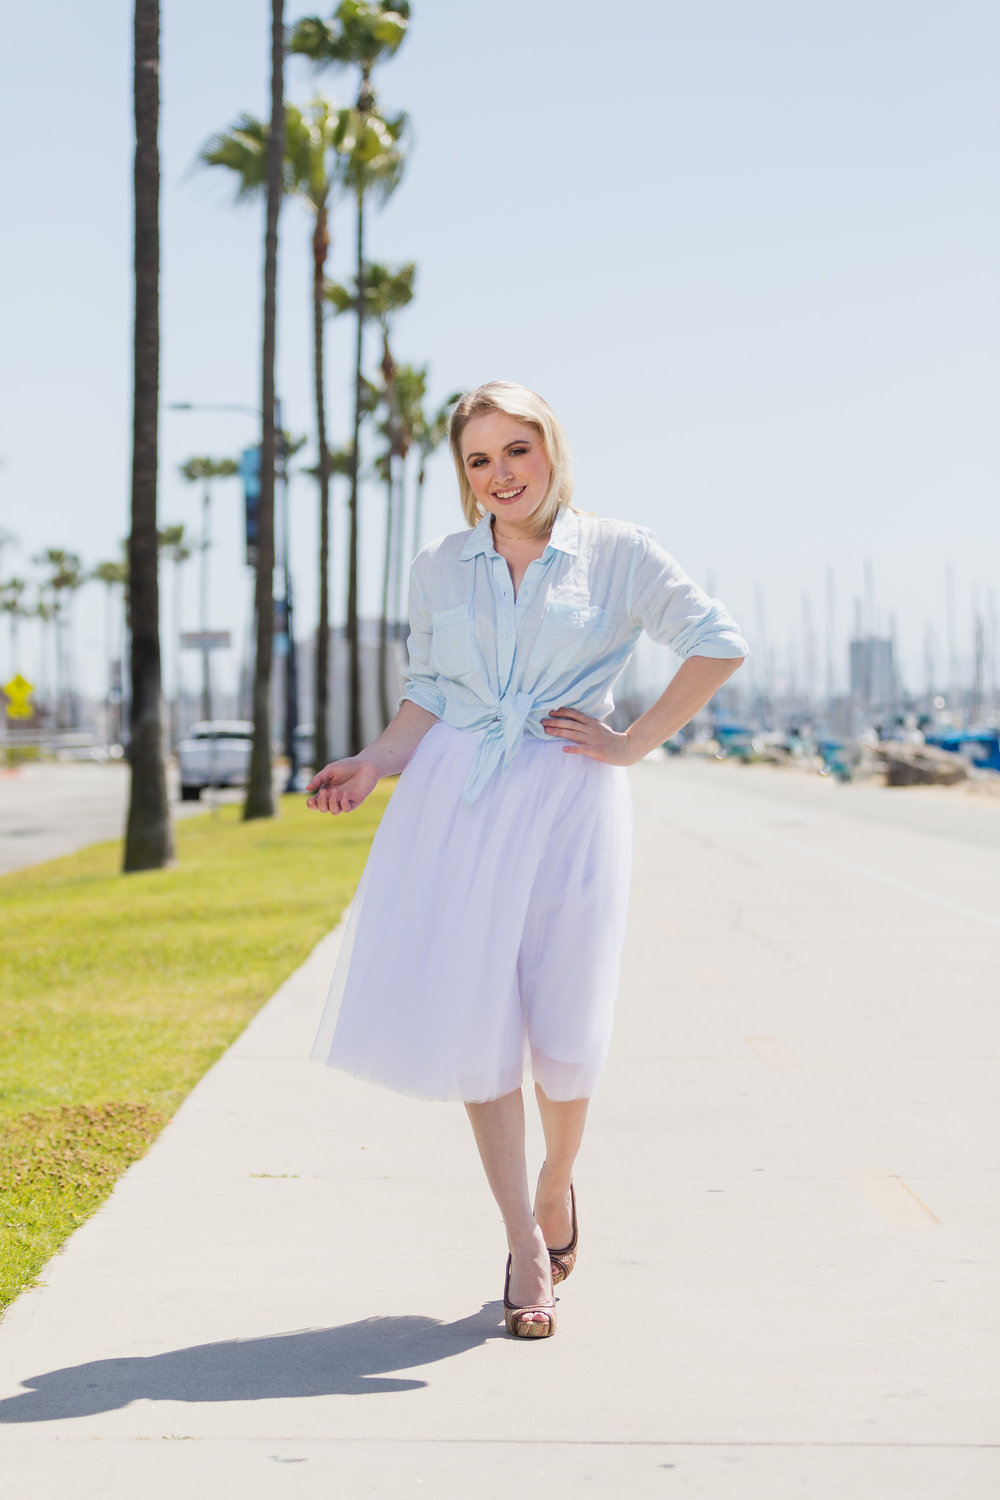 Pretty blonde woman walking down the harbor in heels and a tulle skirt.jpg